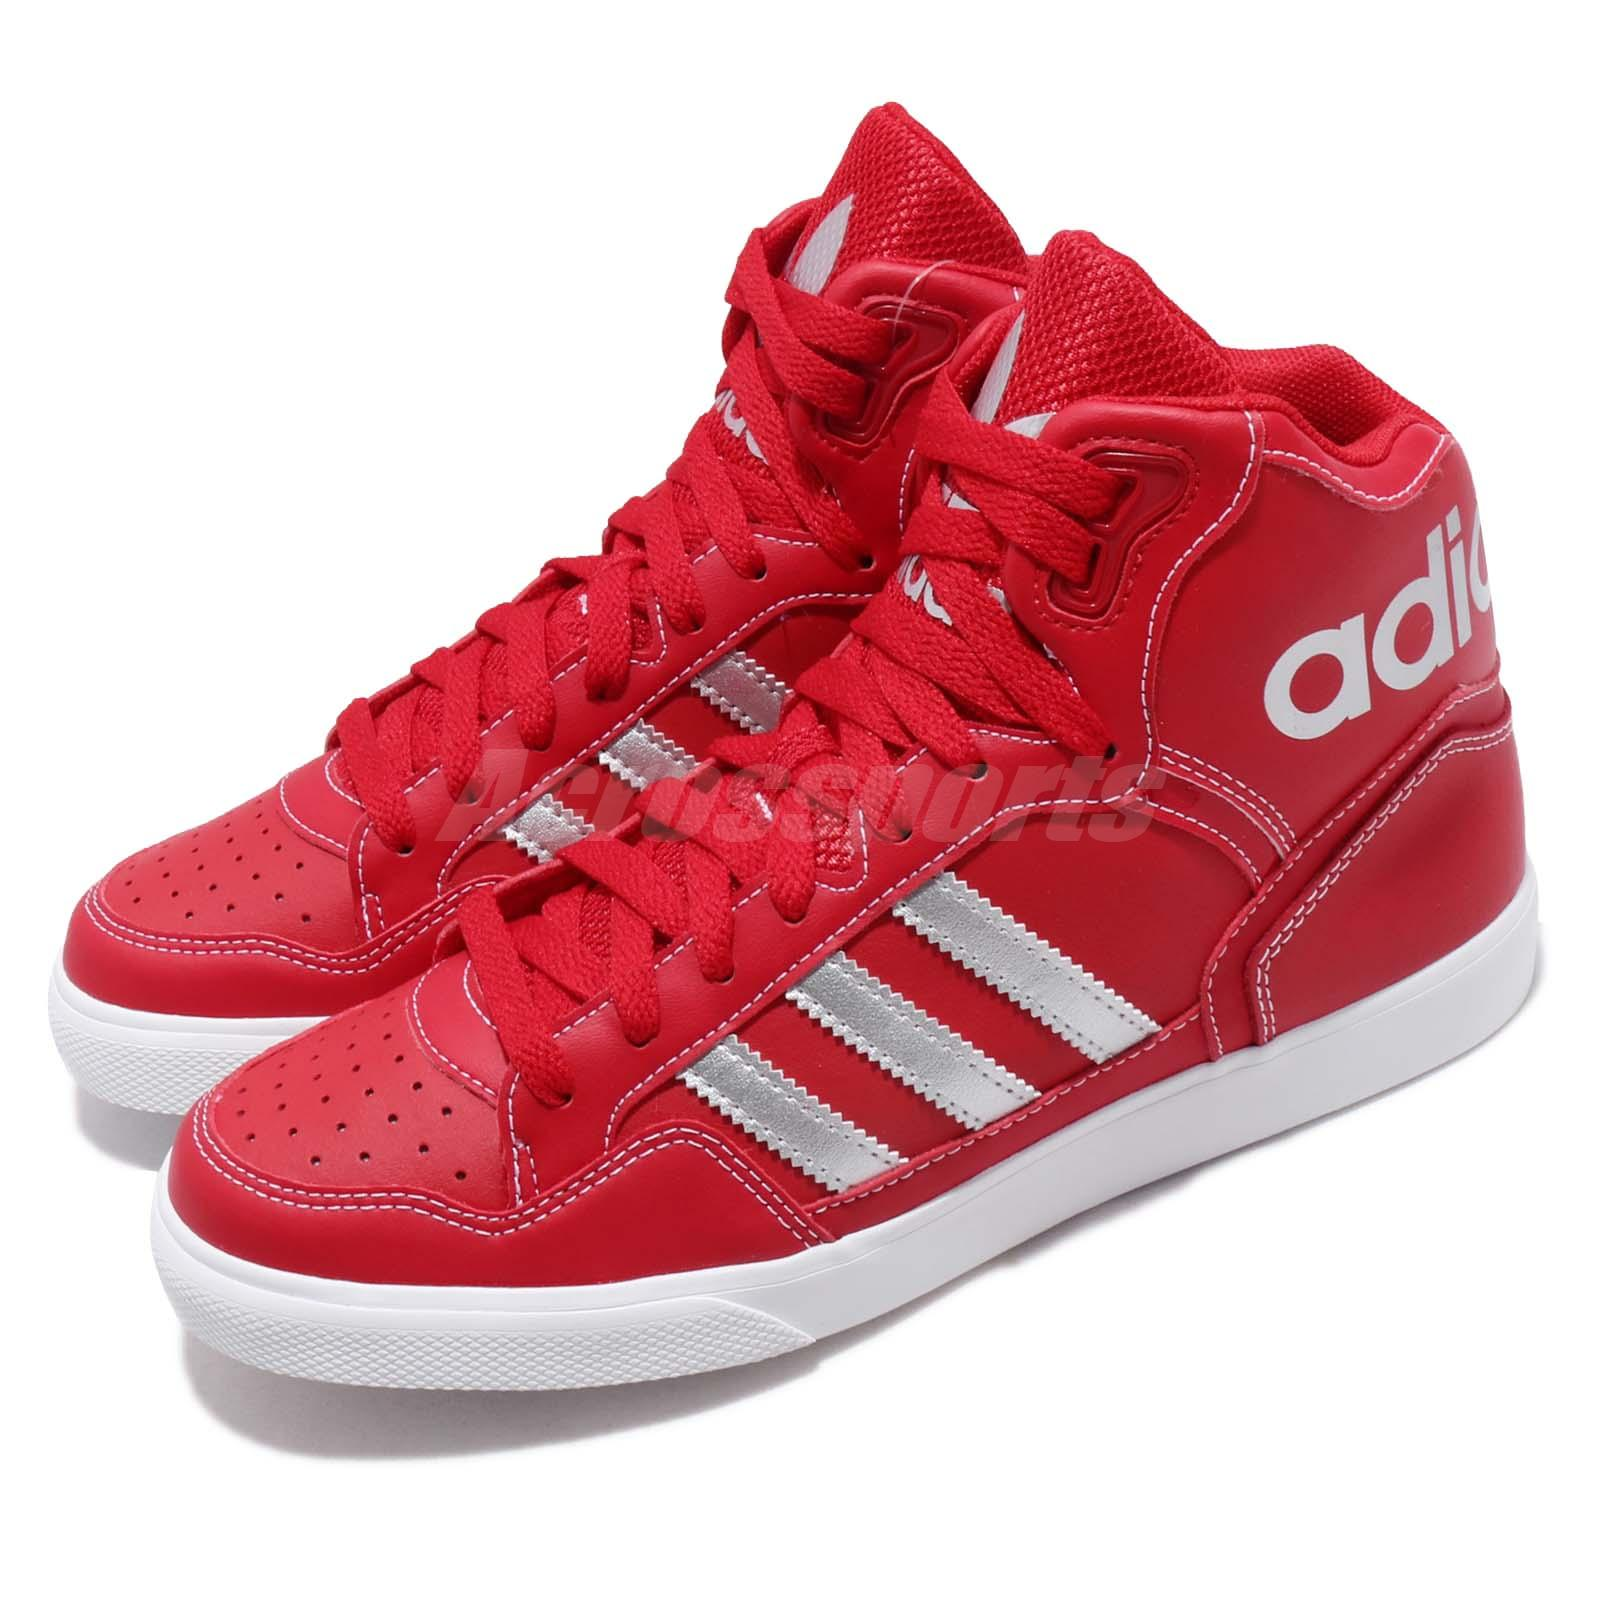 adidas Originals Extaball W Scarlet Silver White Women Shoes Sneakers EE3824